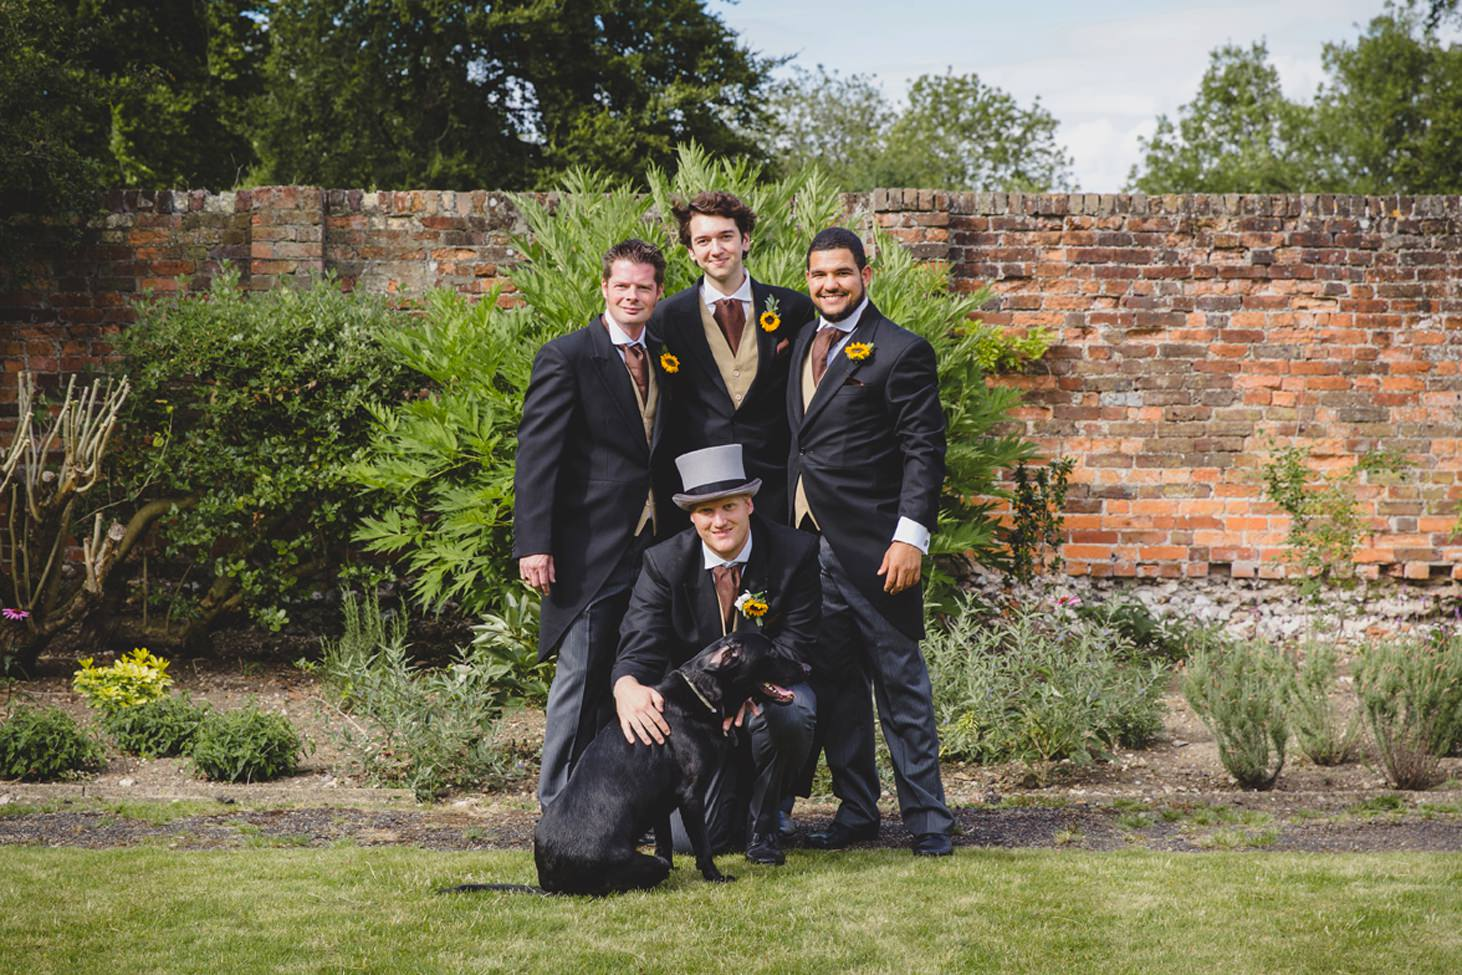 Wycombe Abbey wedding photography groomsmen portrait with dog